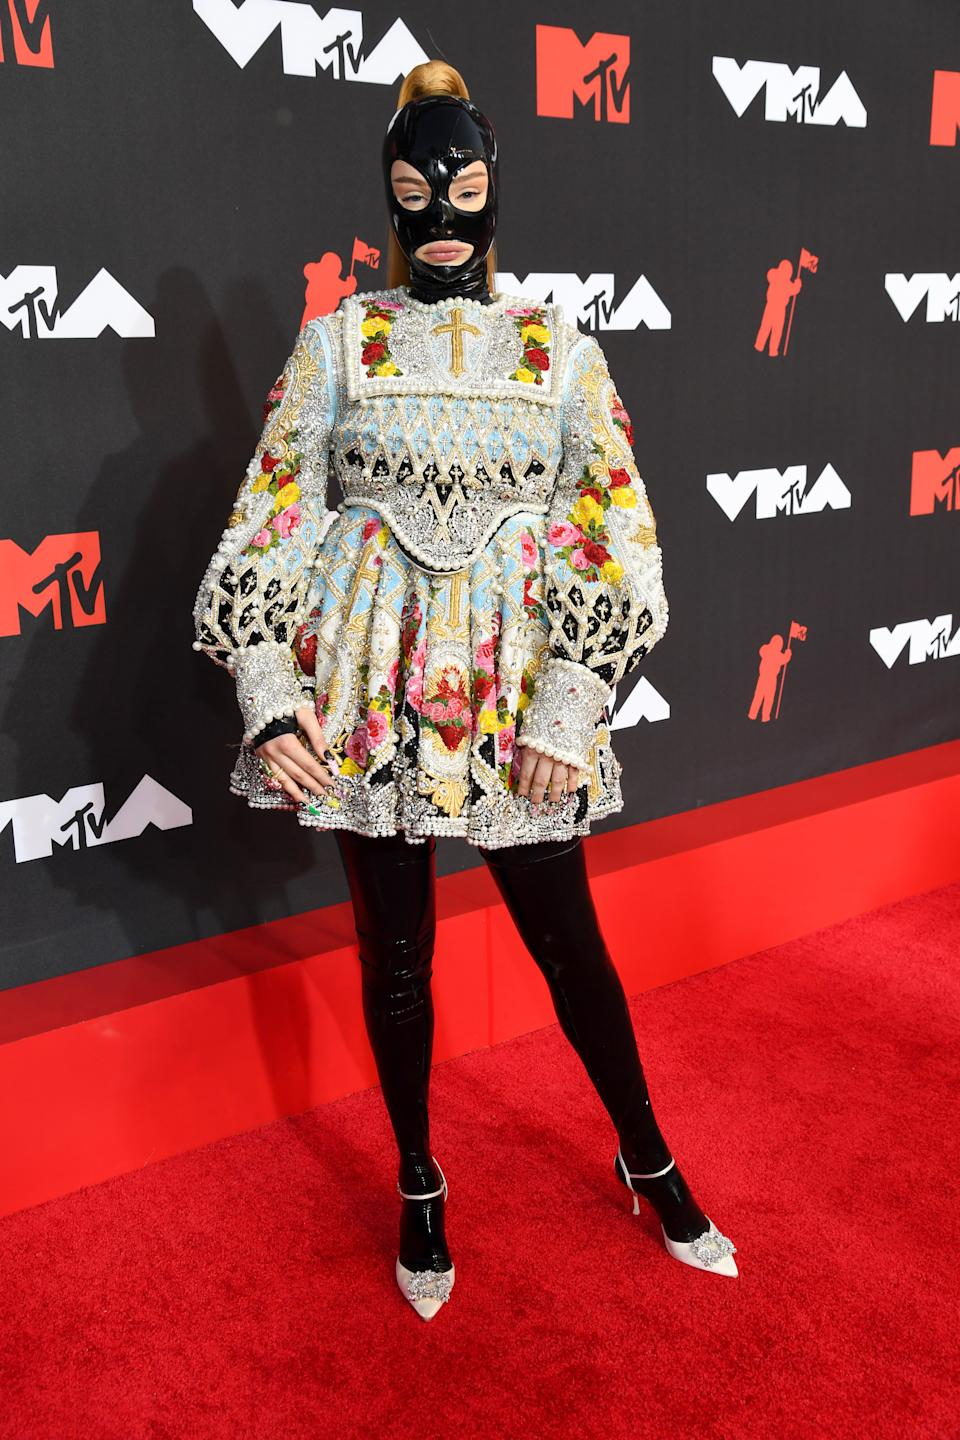 Kim Petras in latex mask at the 2021 MTV Video Music Awards